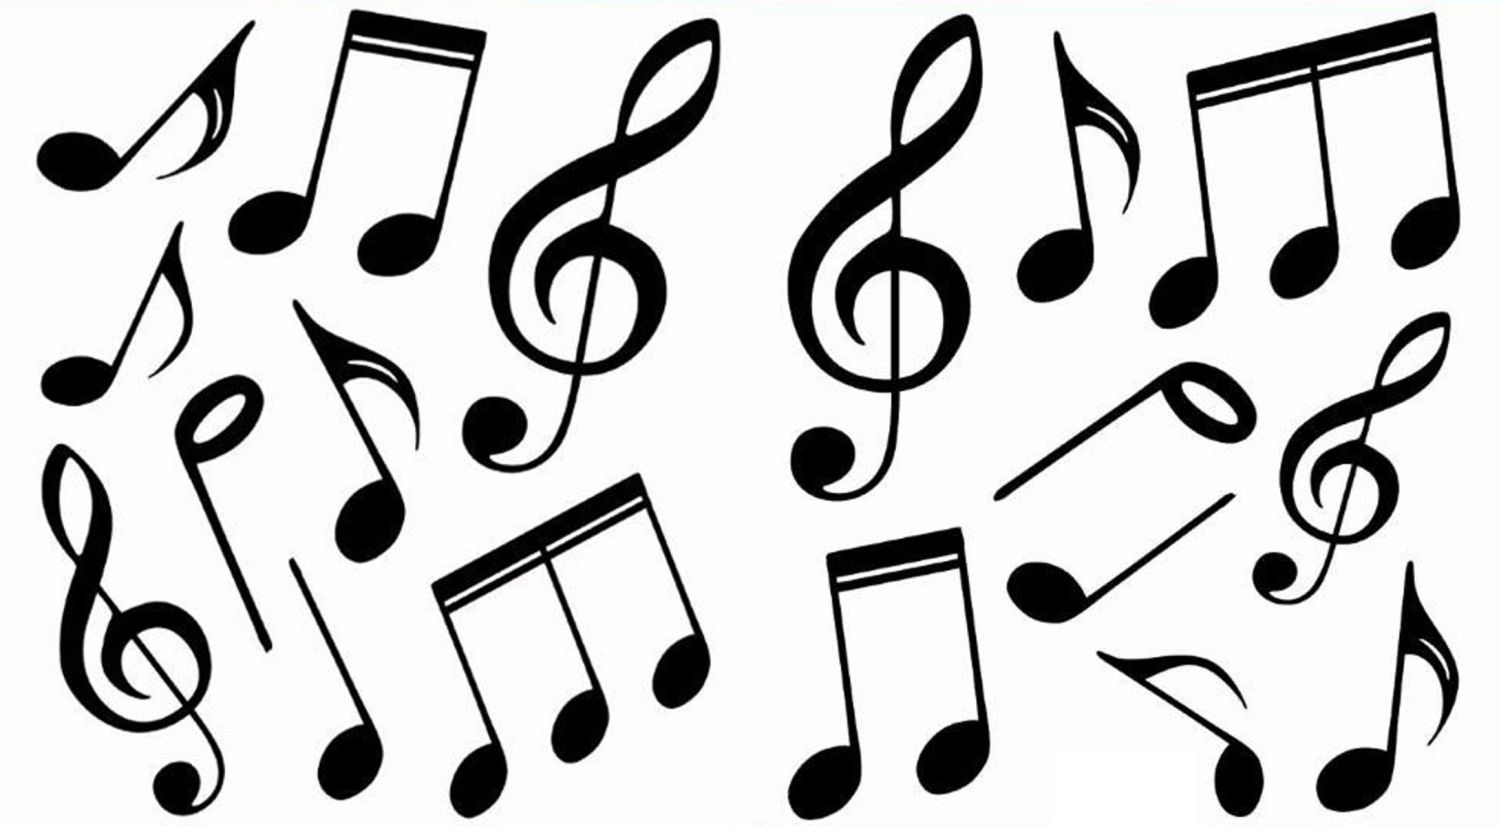 Musical entertainment clipart picture royalty free download Musical Notes Free Clipart | Free download best Musical Notes Free ... picture royalty free download